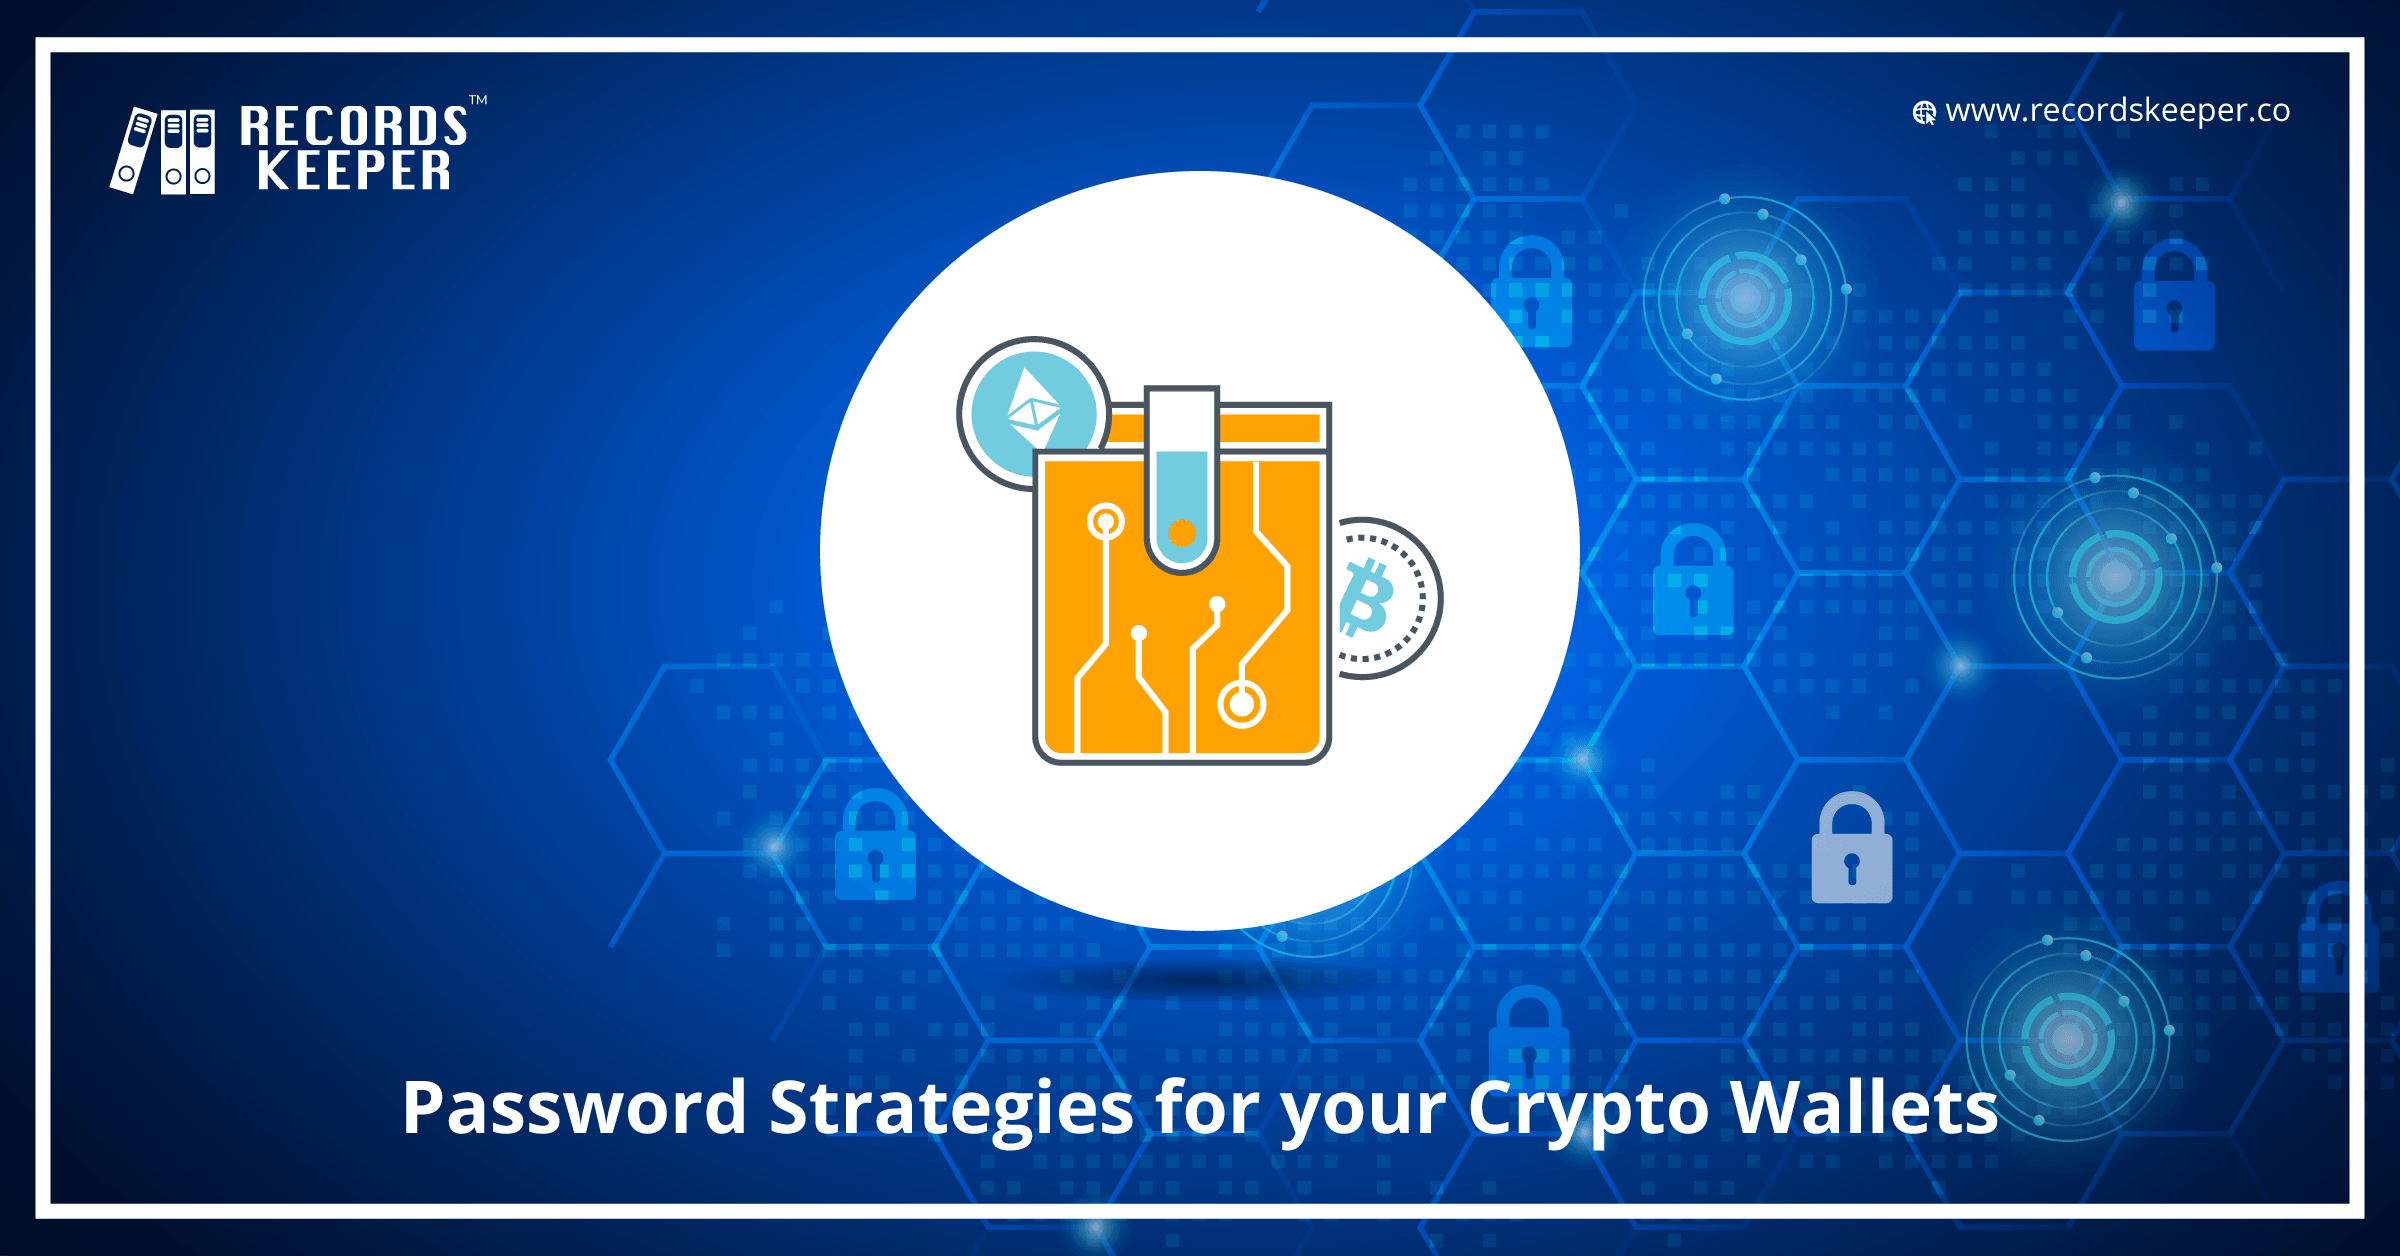 Password Strategies for your Crypto Wallet